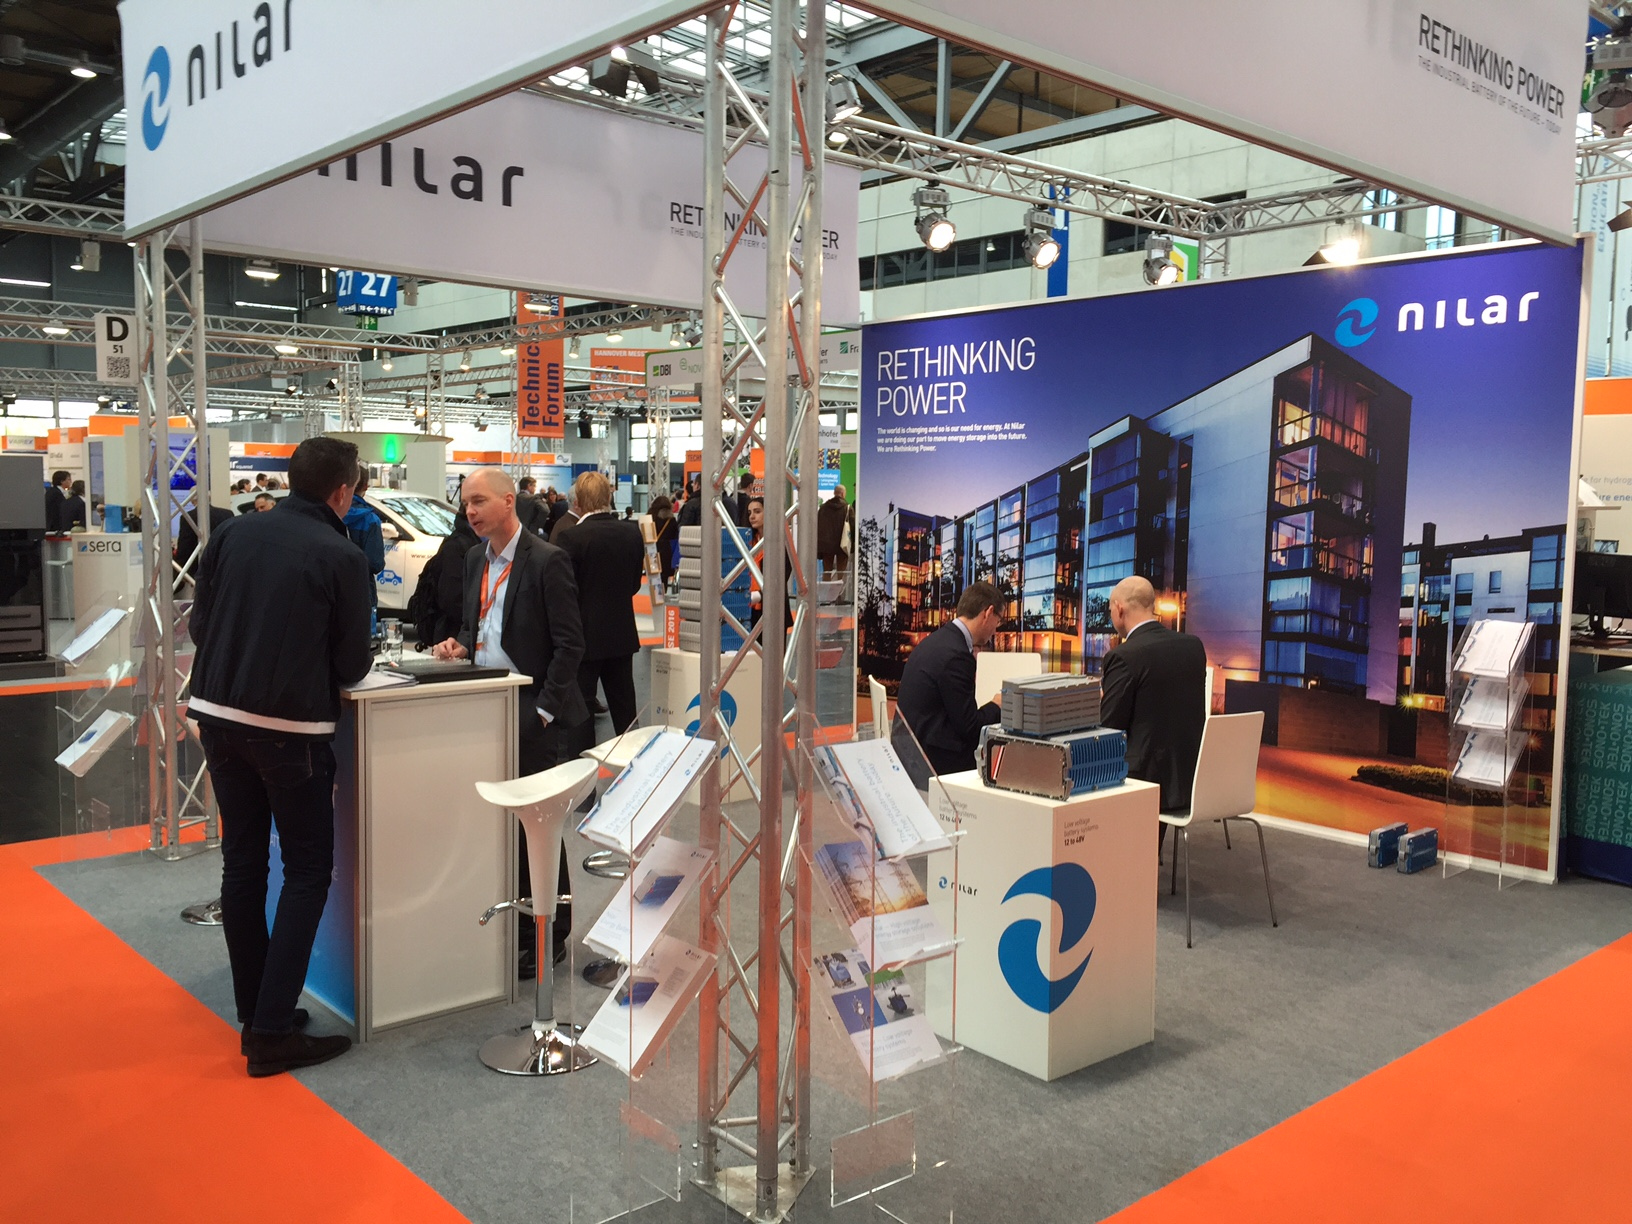 http://Nilar%20at%20energy%20trade%20fair%20in%20Hannover